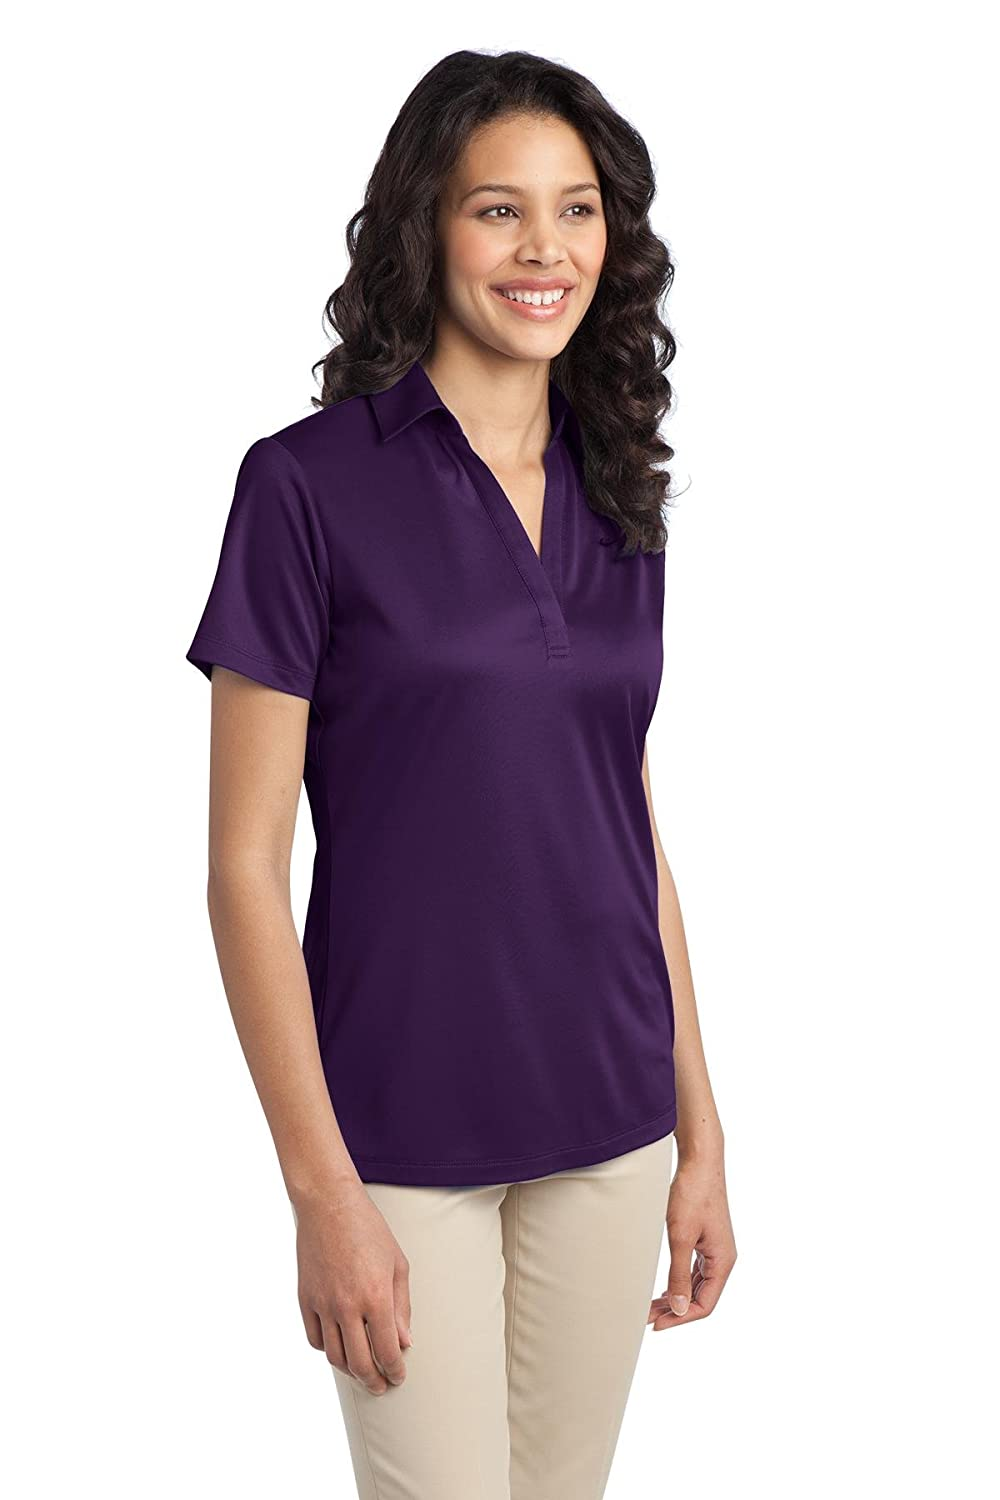 Port Authority Womens Wicking Performance Polo Shirt